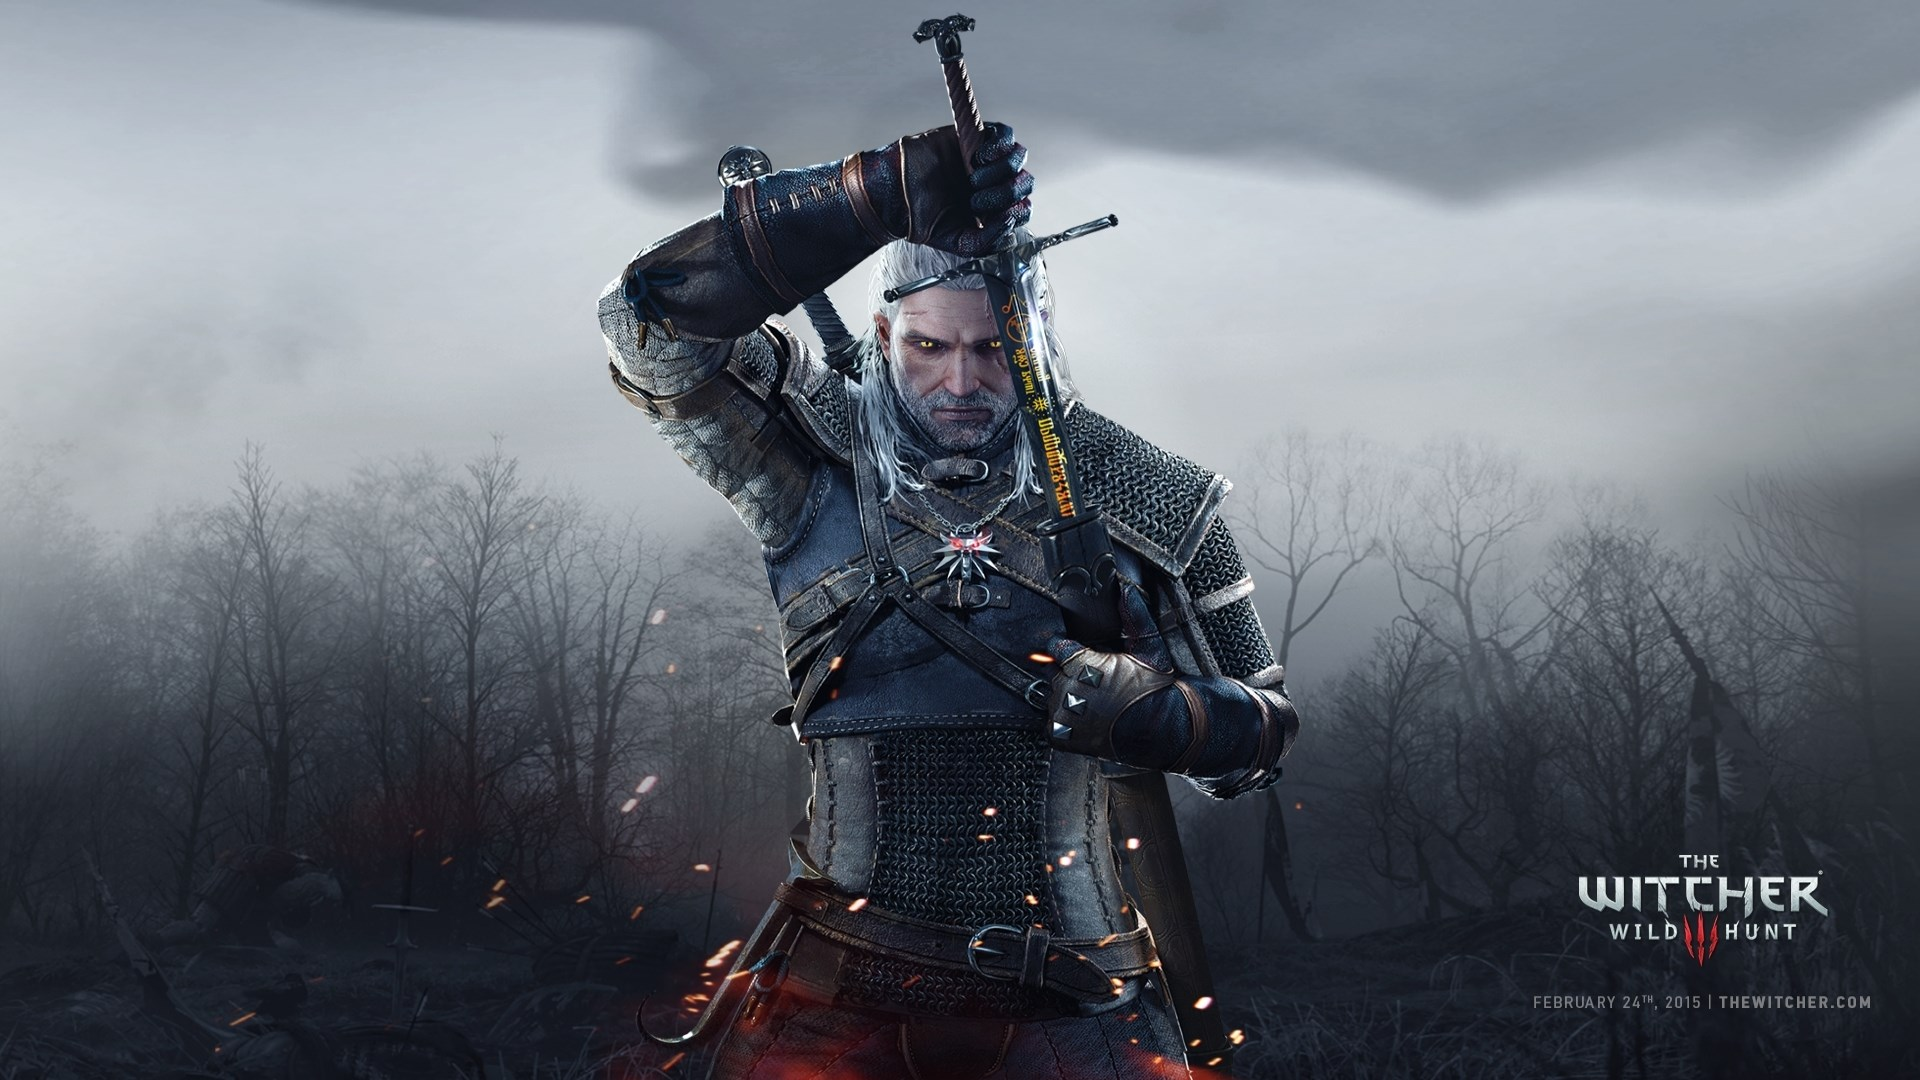 1920x1080-px-The-Witcher-Wild-Hunt-full-hd-by-Hartwell-Sinclair-wallpaper-wpc580946